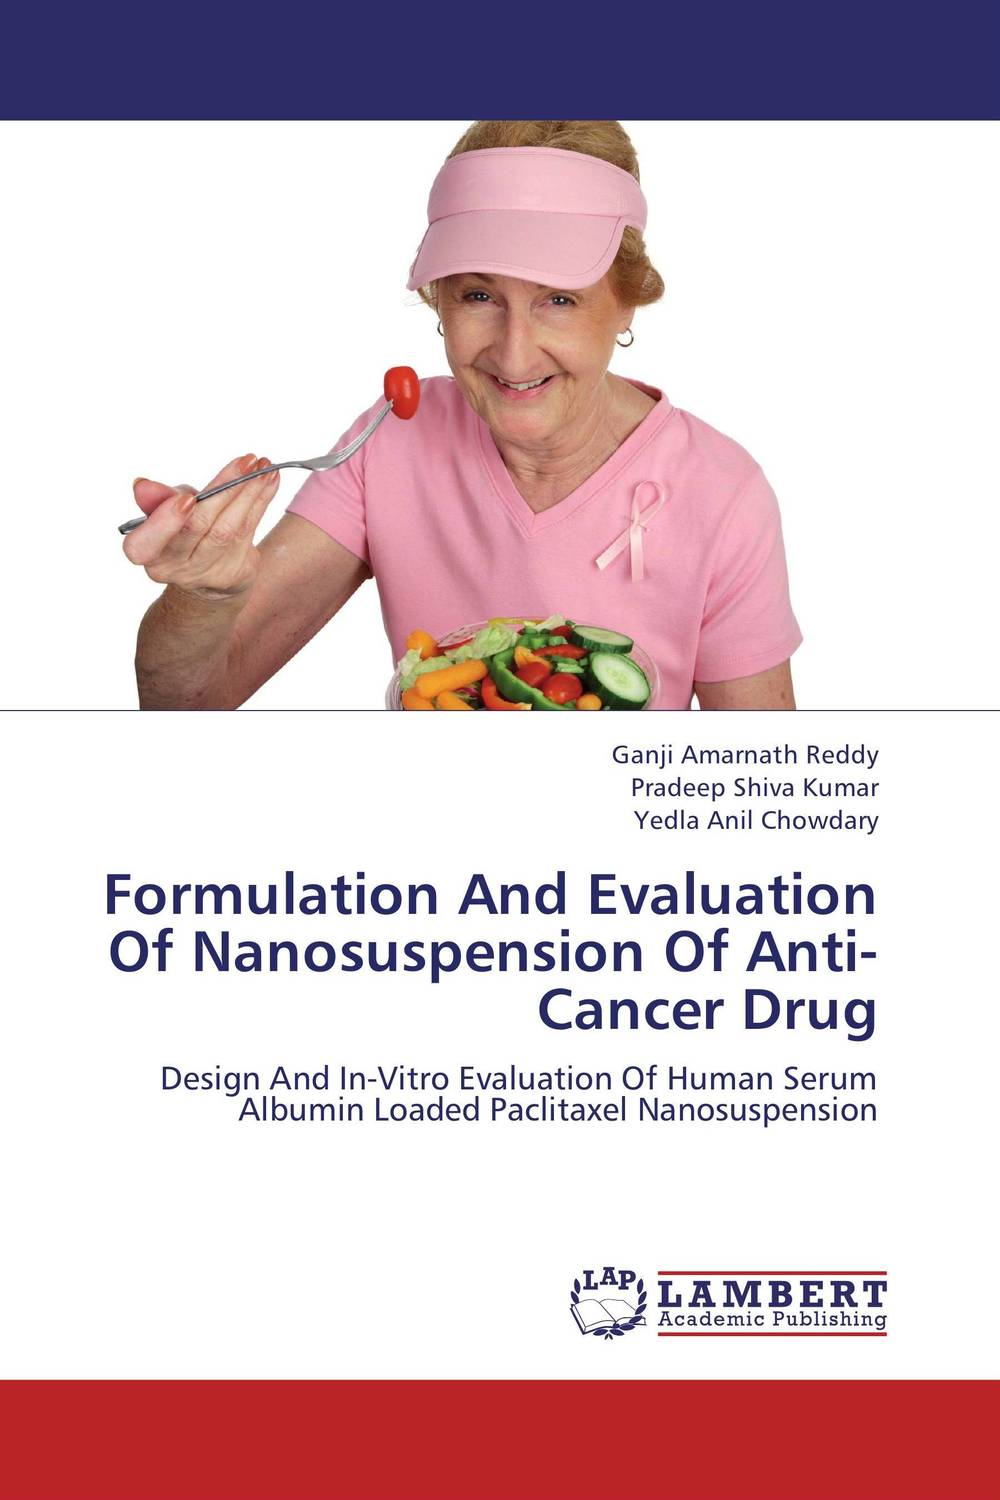 Formulation And Evaluation Of Nanosuspension Of Anti-Cancer Drug amita yadav kamal singh rathore and geeta m patel formulation evaluation and optimization of mouth dissolving tablets